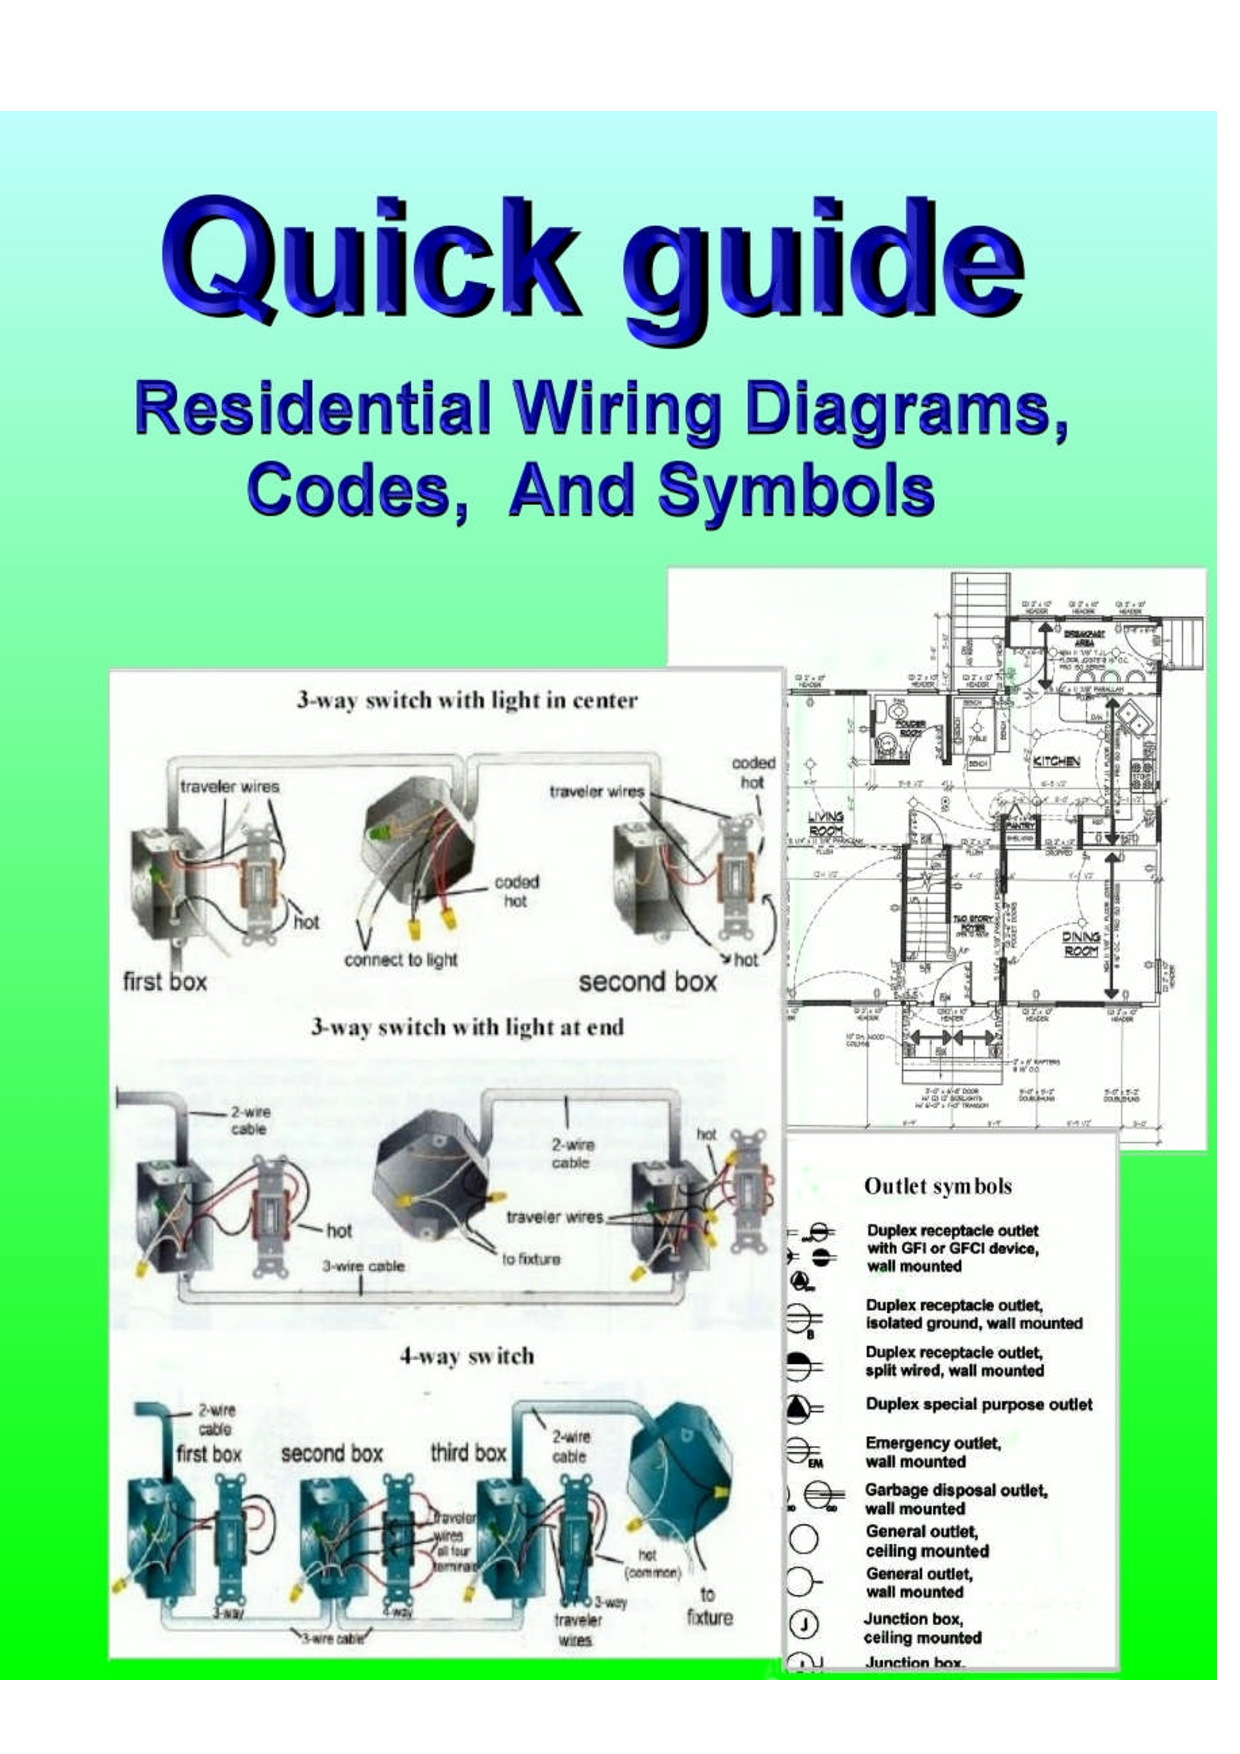 a step by step home wiring guide with diagrams symbols and electrical codes  [ 1240 x 1754 Pixel ]